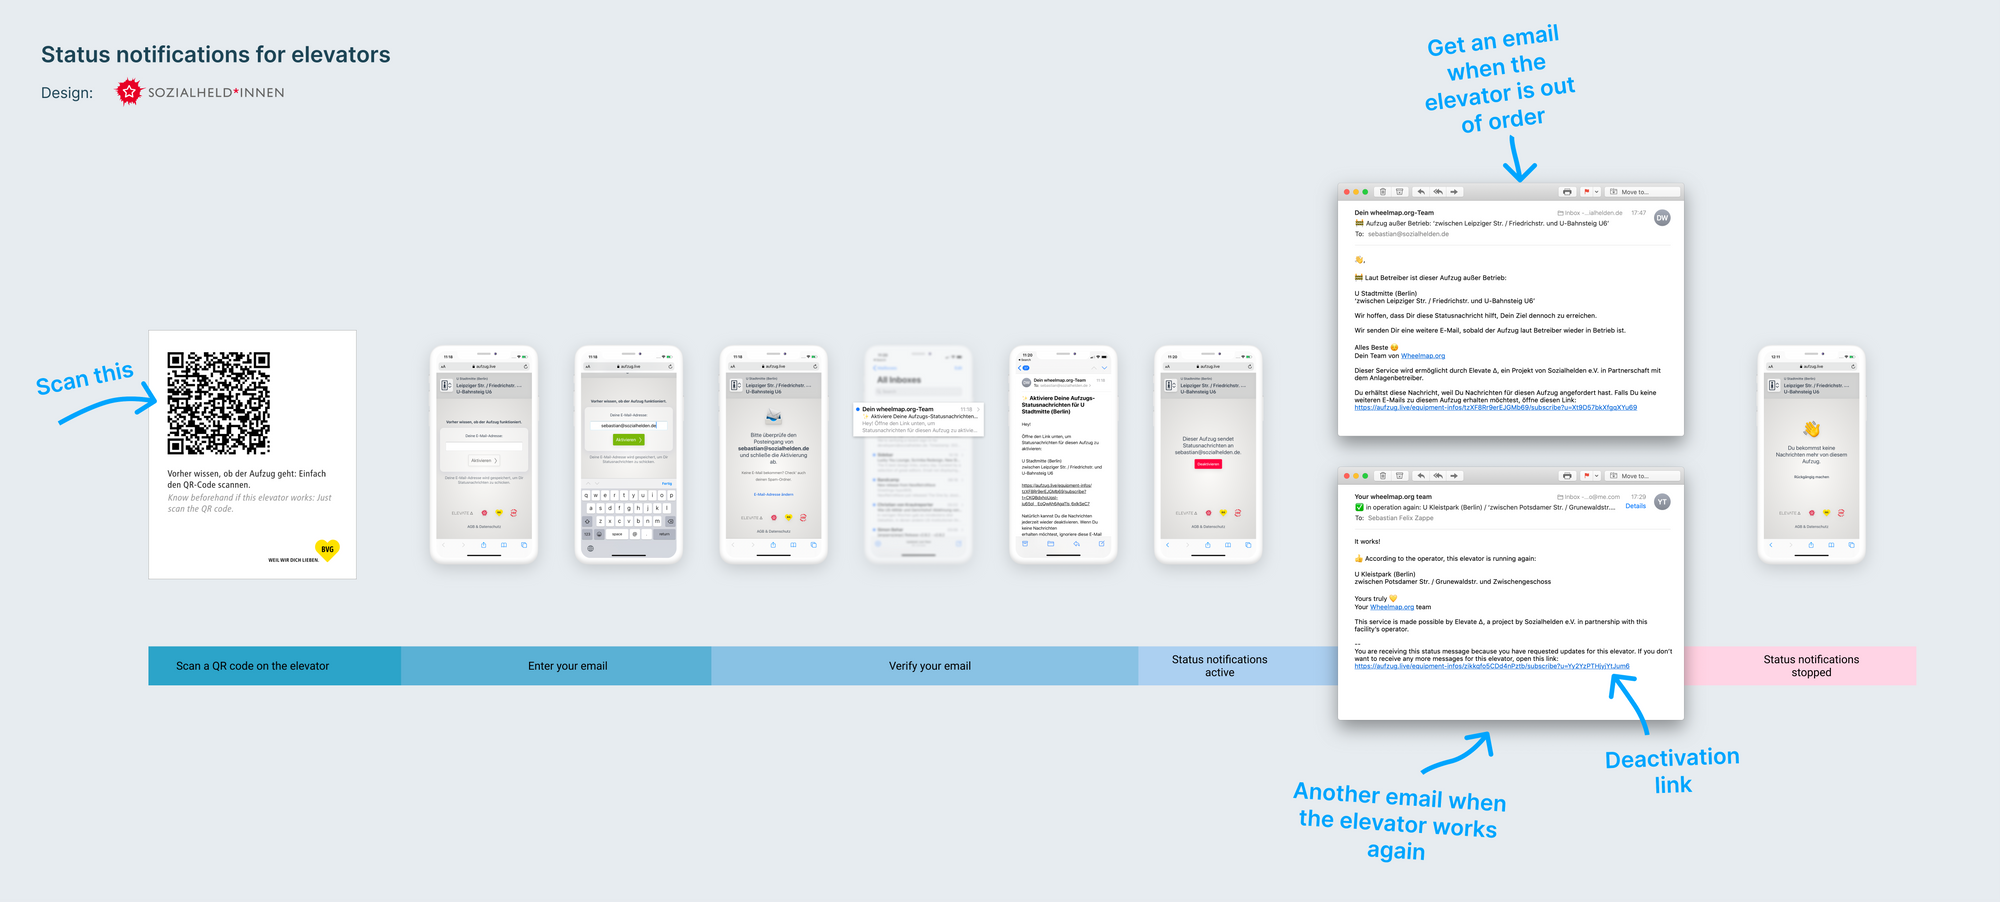 A user journey diagram showing the whole process: scanning a QR code, verifying your email address, , getting status notifications, and deactivating your subscription.